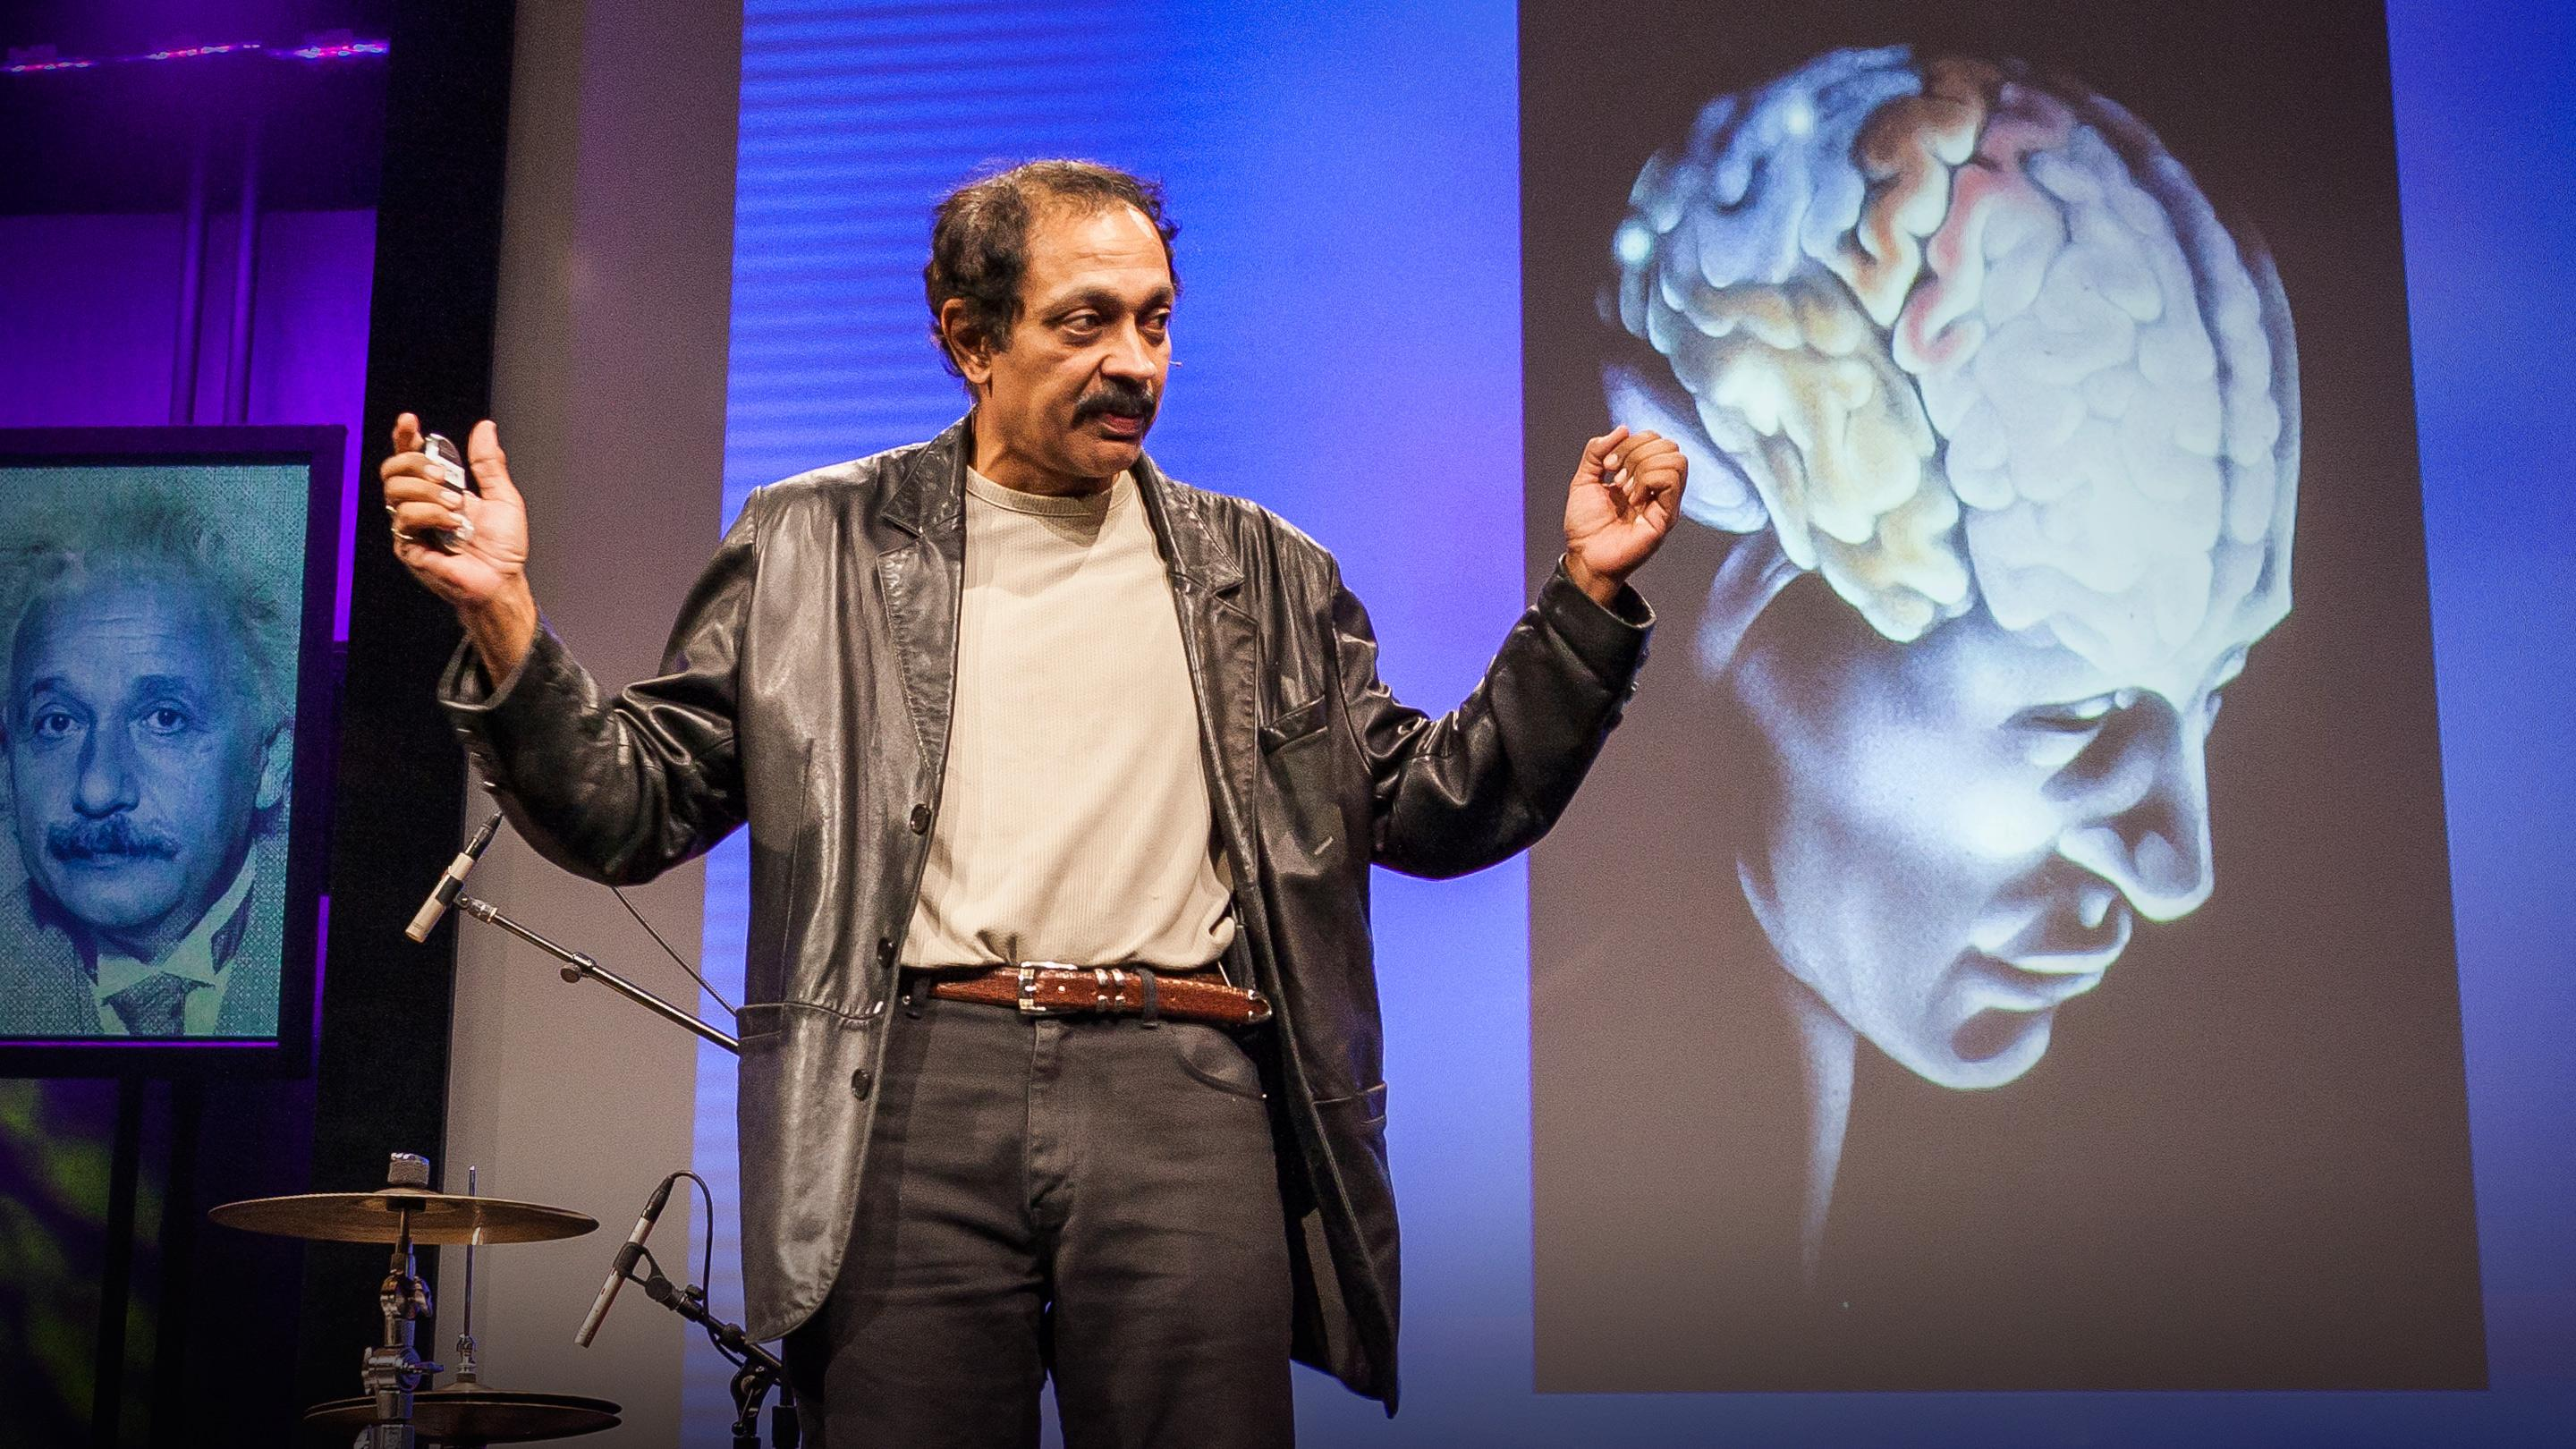 Vs ramachandran 3 clues to understanding your brain ted talk ccuart Gallery